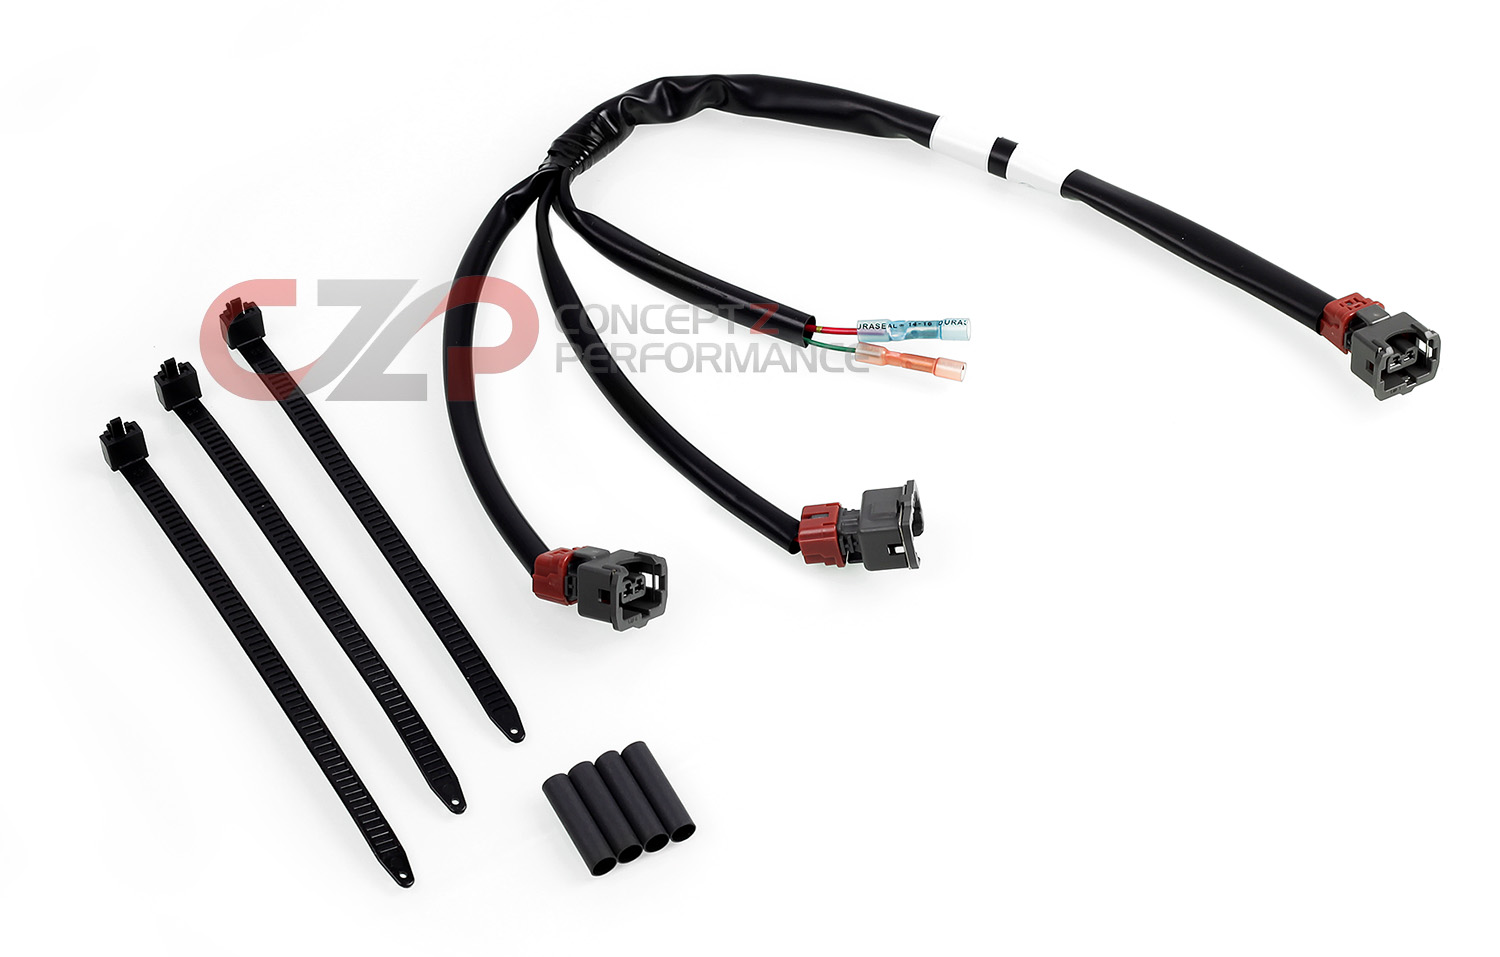 300zx fuel injector wiring harness